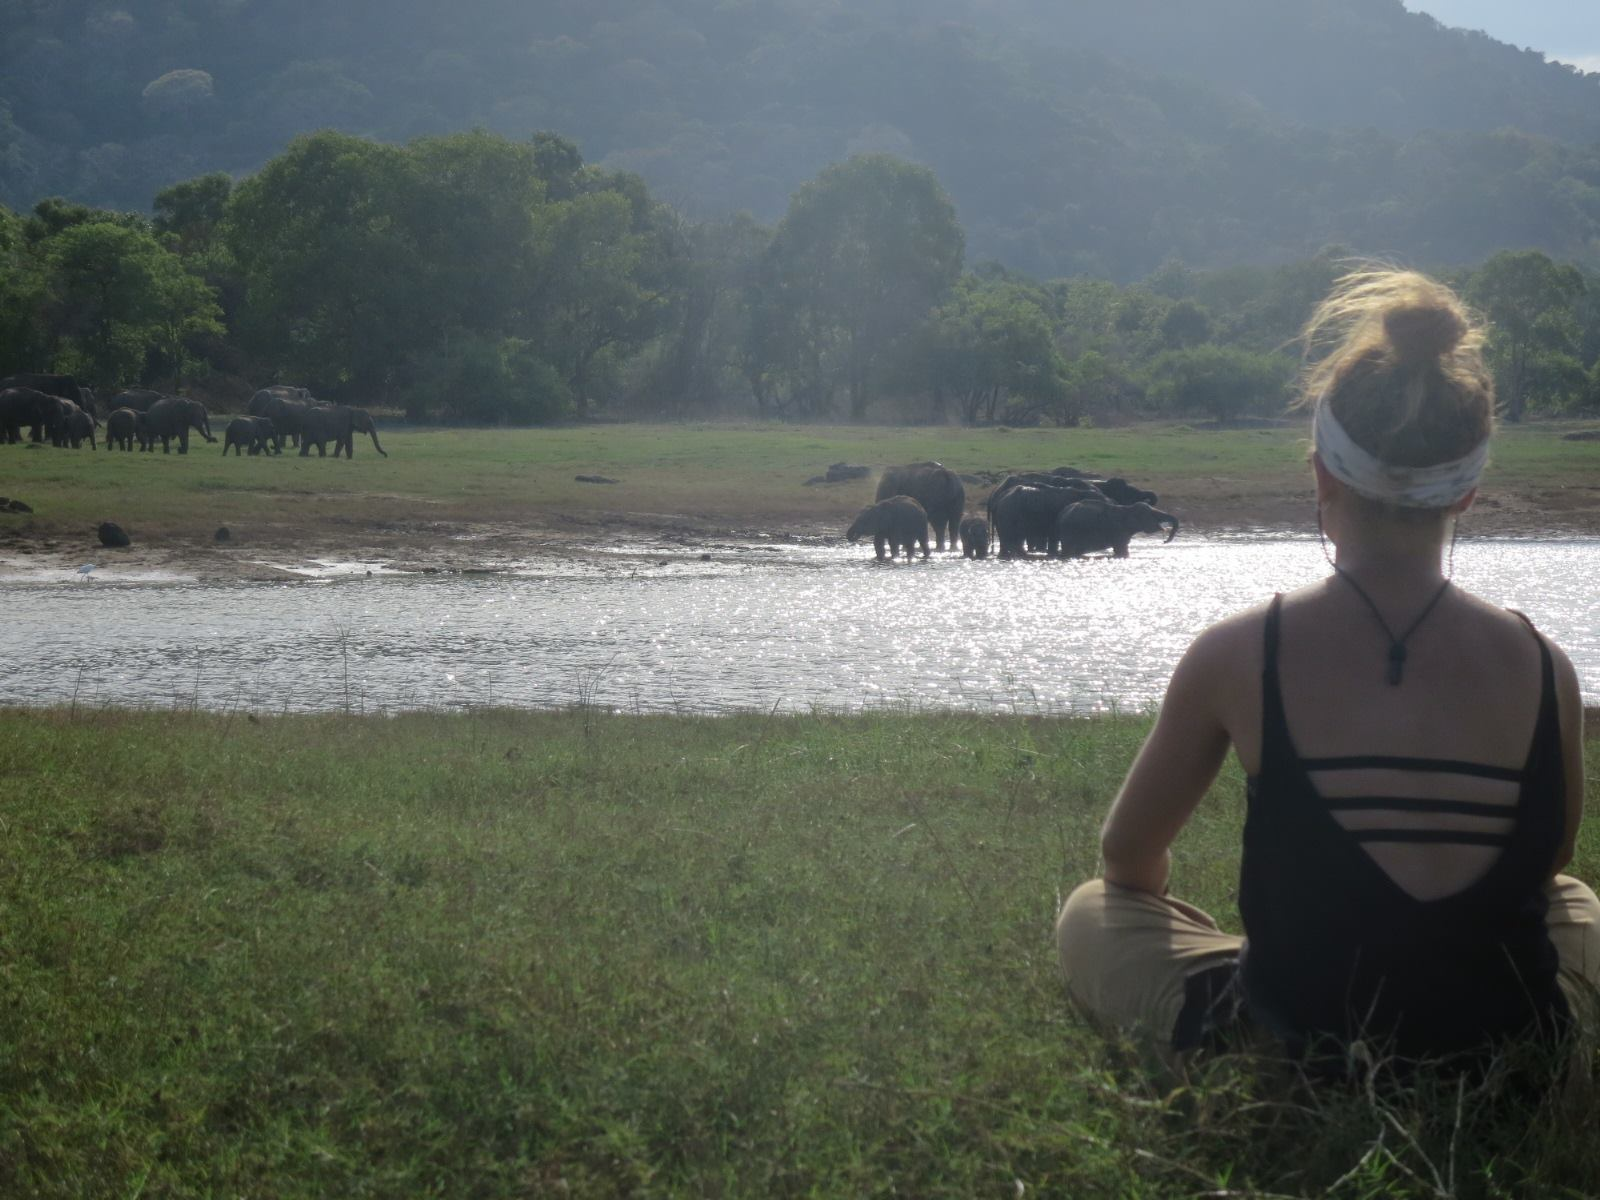 view with elephants from back